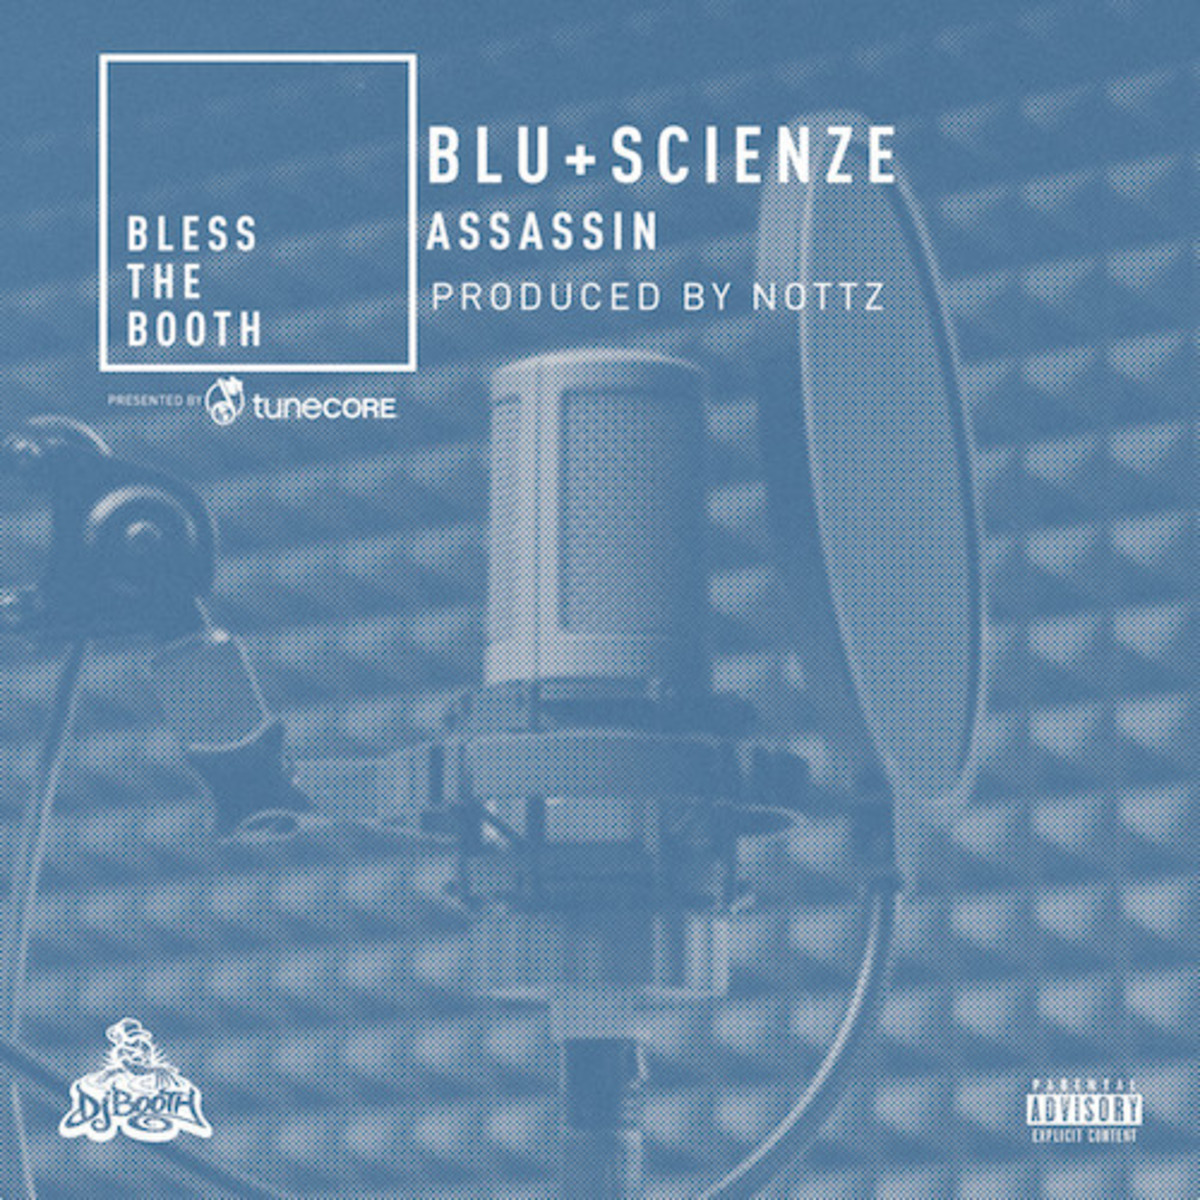 blu-scienze-bless-the-booth.jpg